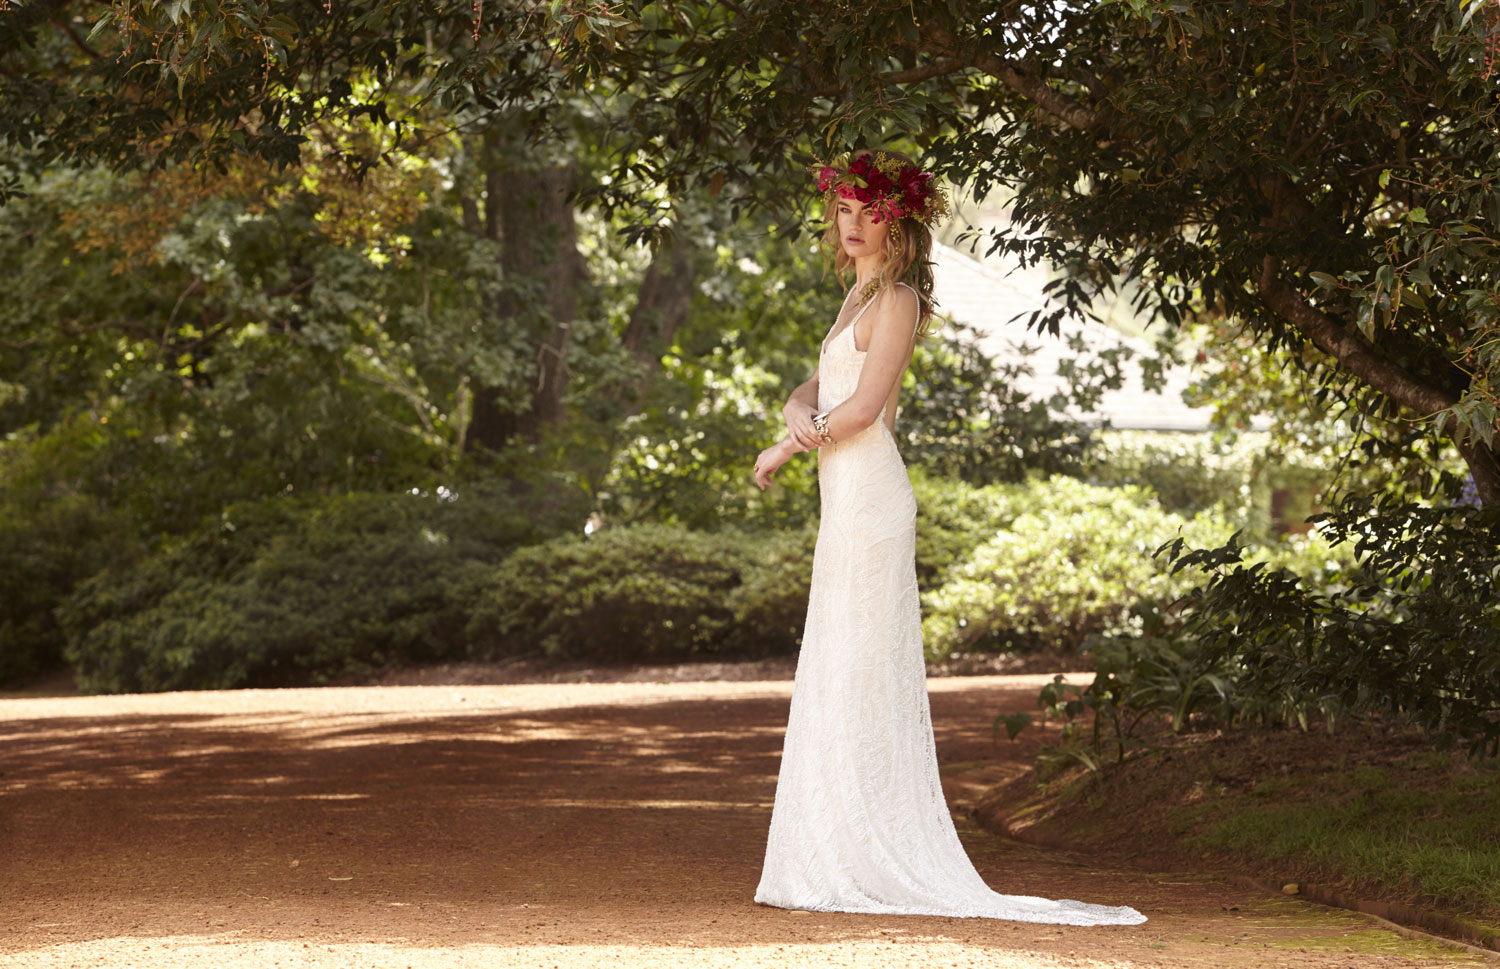 Gown by Lilli Marcs 9357 4408 / lillimarcs.com.au Jewellery by House of Emmanuel Floral crown by Form Over Function